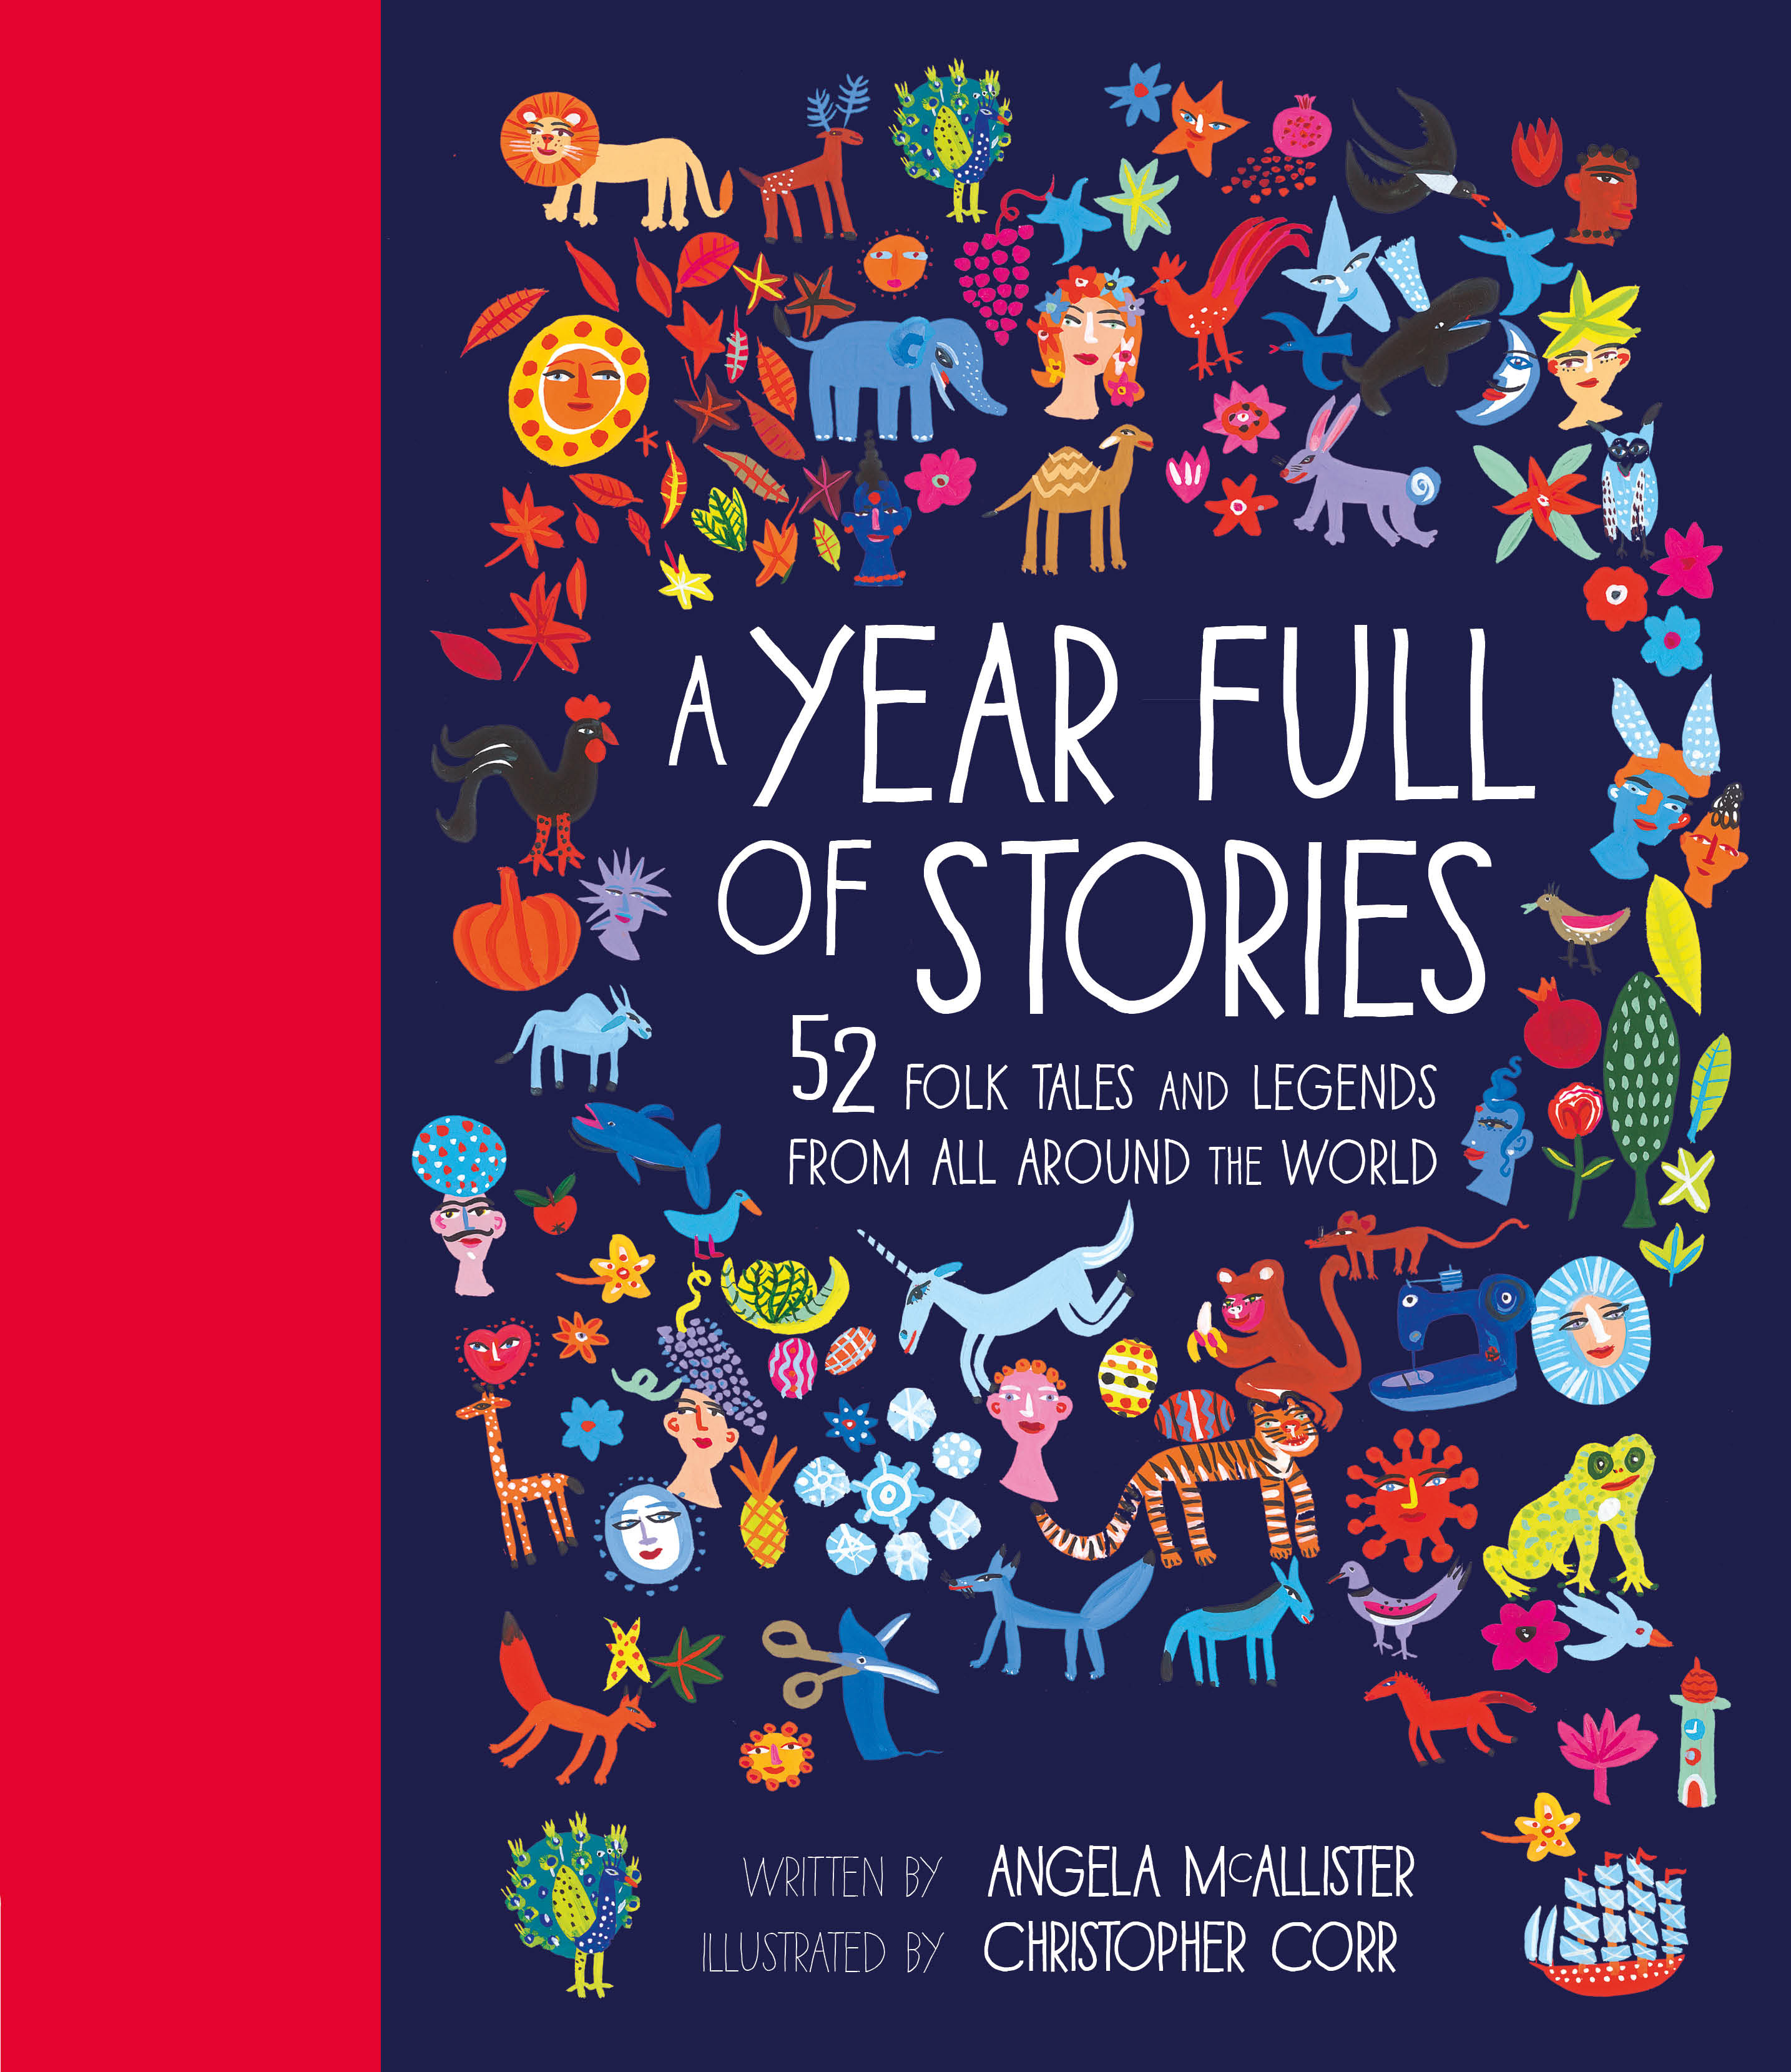 A YEAR FULL OF STORIES : 52 FOLK TALES AND LEGENDS FROM AROUND THE WORLD